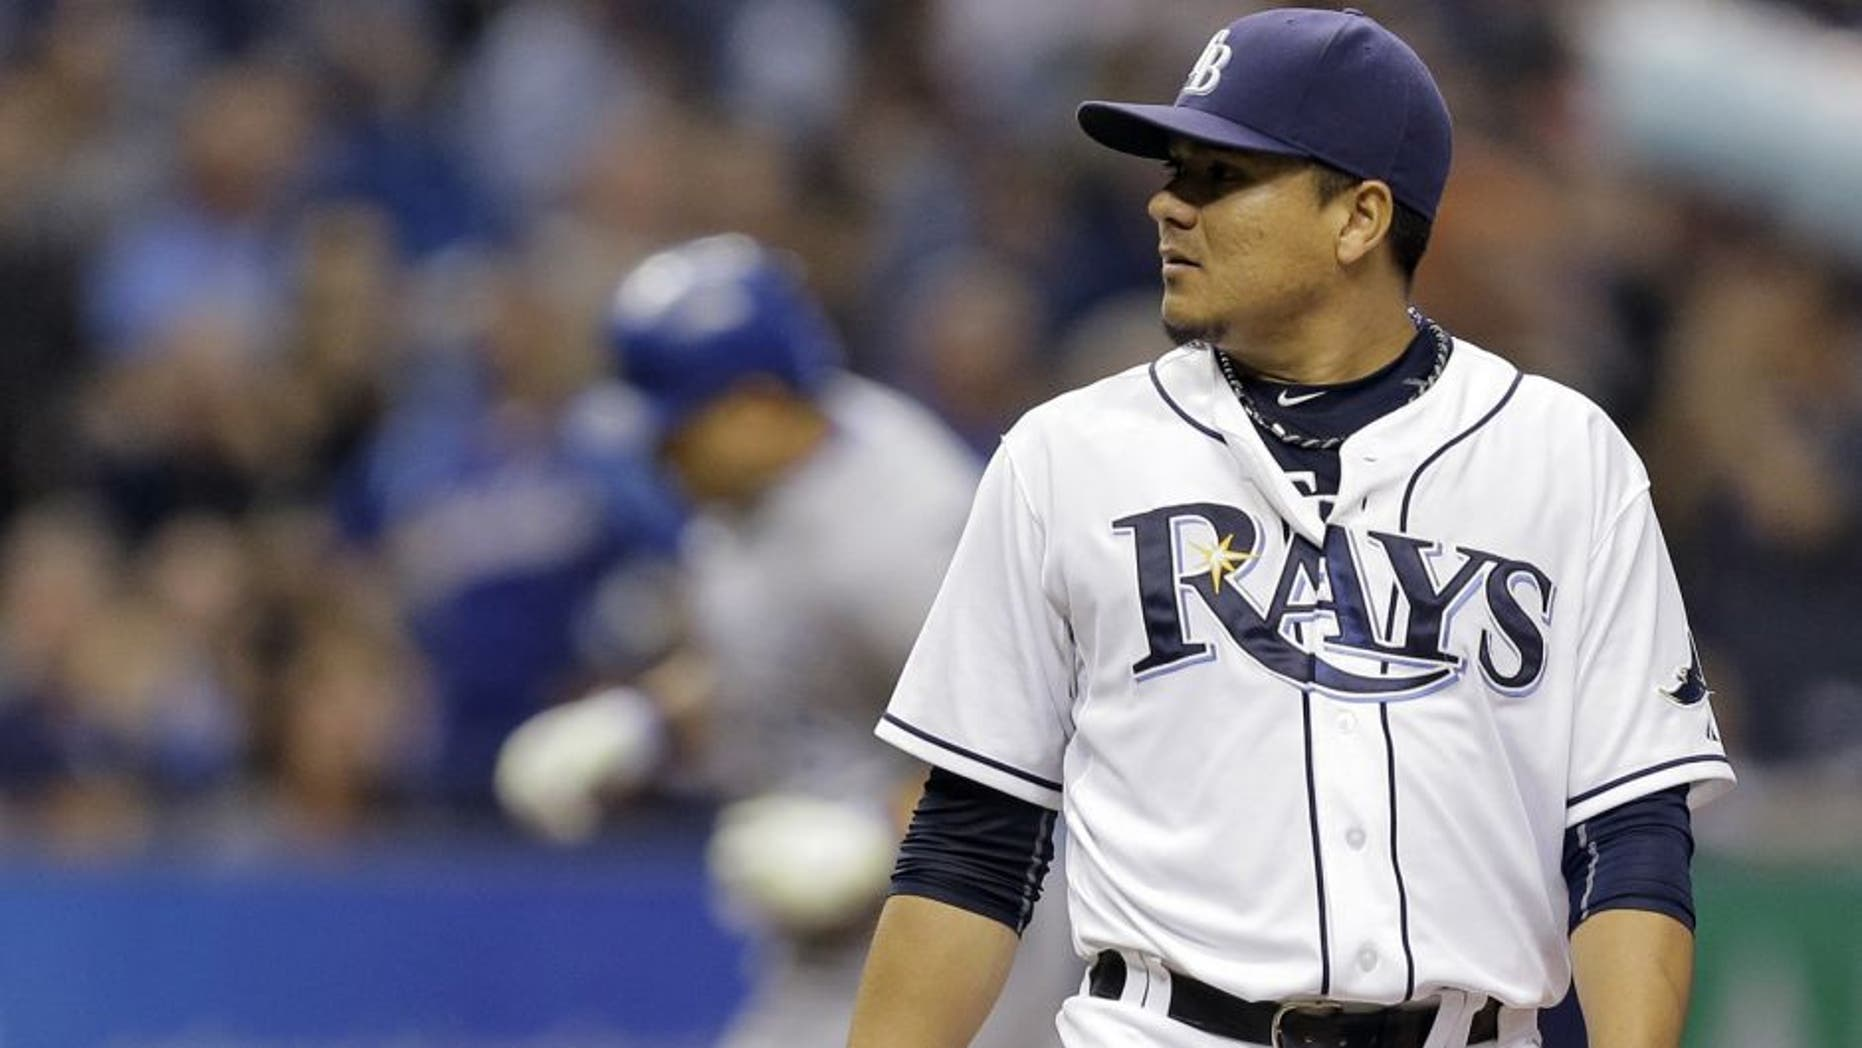 Tampa Bay Rays starting pitcher Erasmo Ramirez, foreground, looks at the home plate umpire as Kansas City Royals' Kendrys Morales runs the bases after hitting a two-run home run during the third inning of a baseball game Friday, Aug. 28, 2015, in St. Petersburg, Fla. (AP Photo/Chris O'Meara)